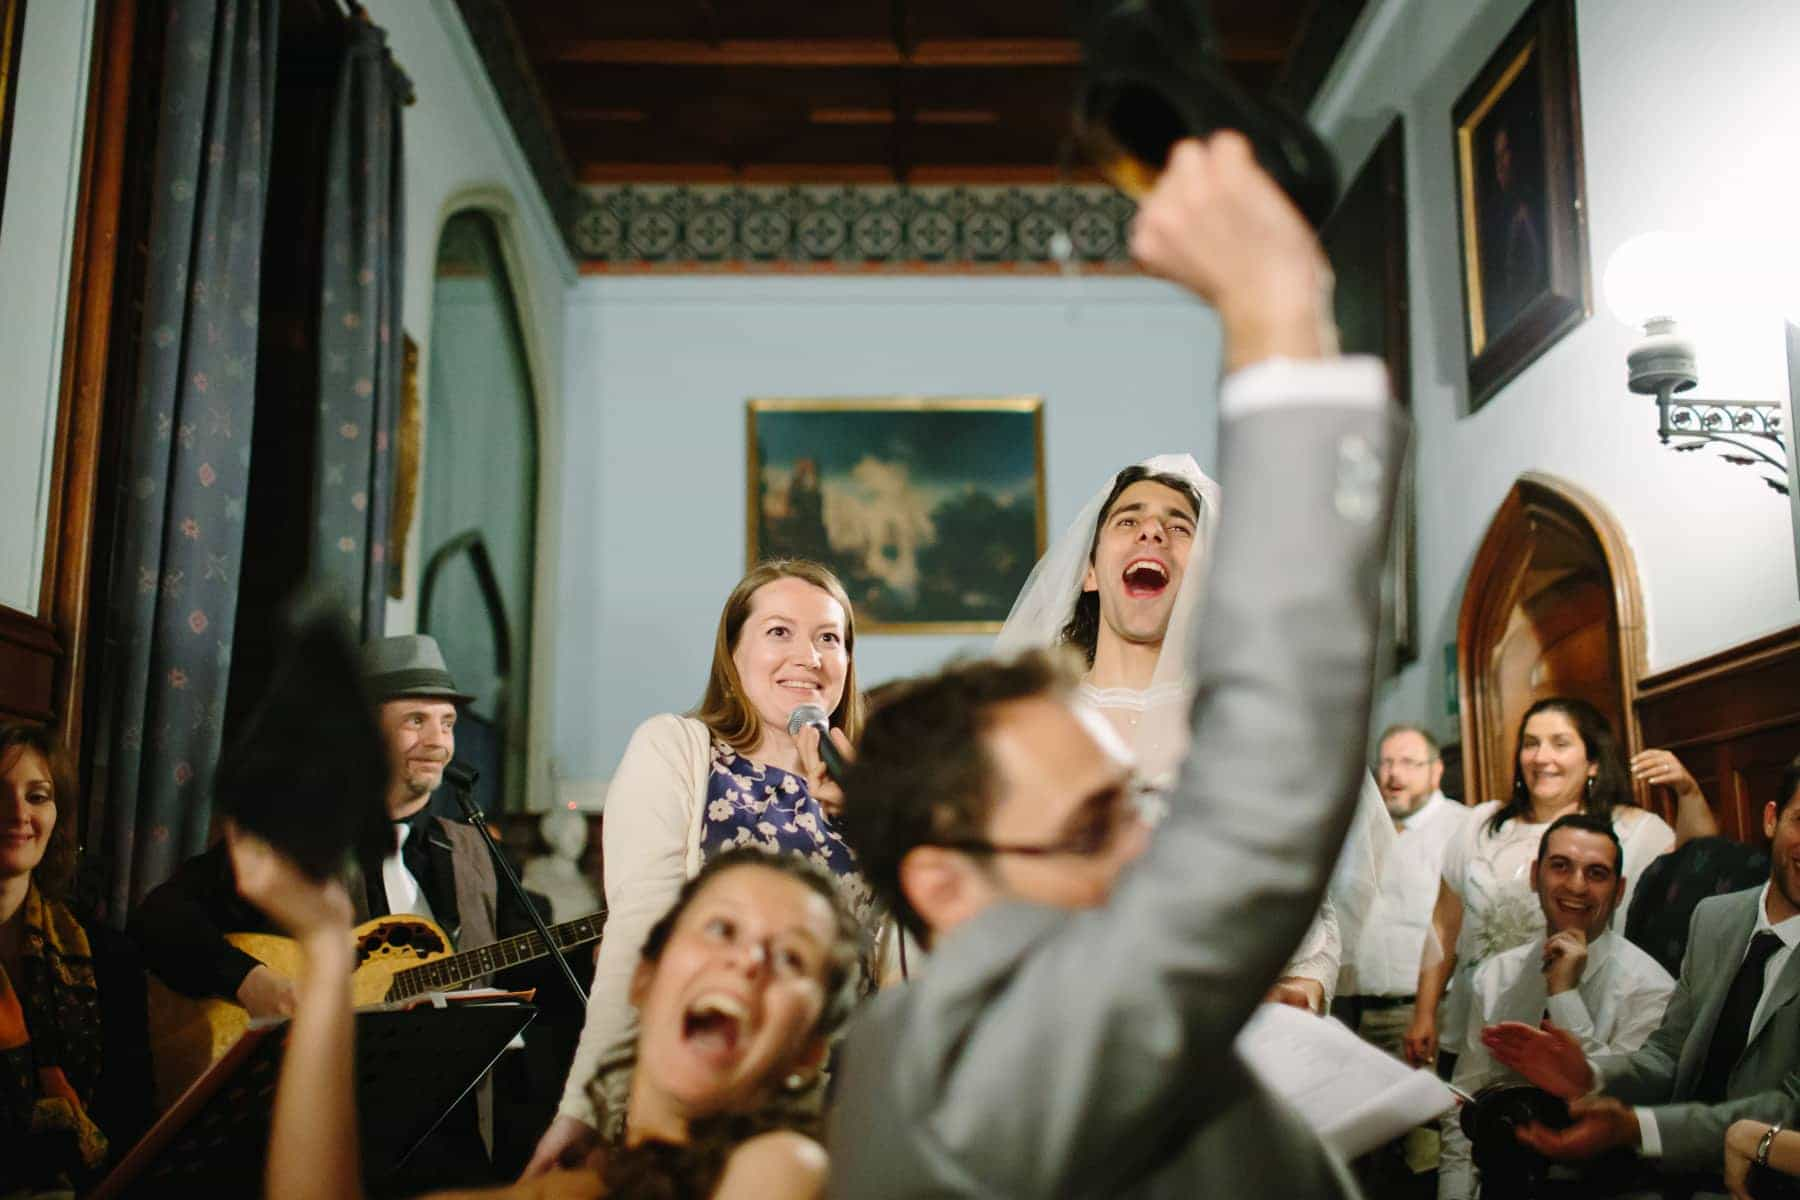 The MCs laugh as bride and groom play the shoe game in a grand hallway at this destination wedding in Castello Dal Pozzo, Italy.